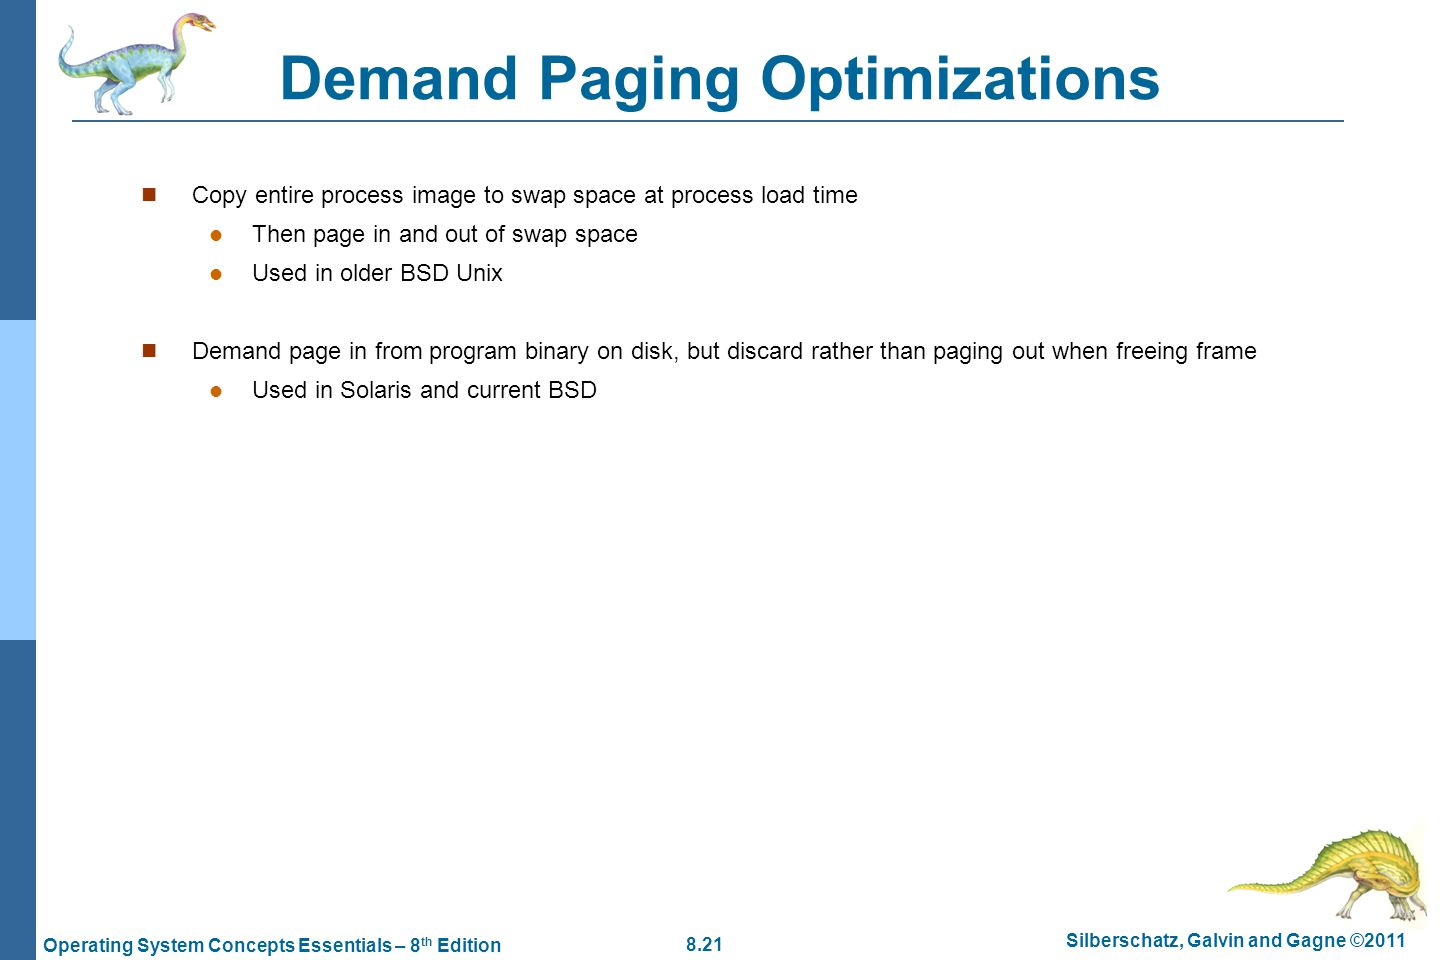 Demand Paging Optimizations